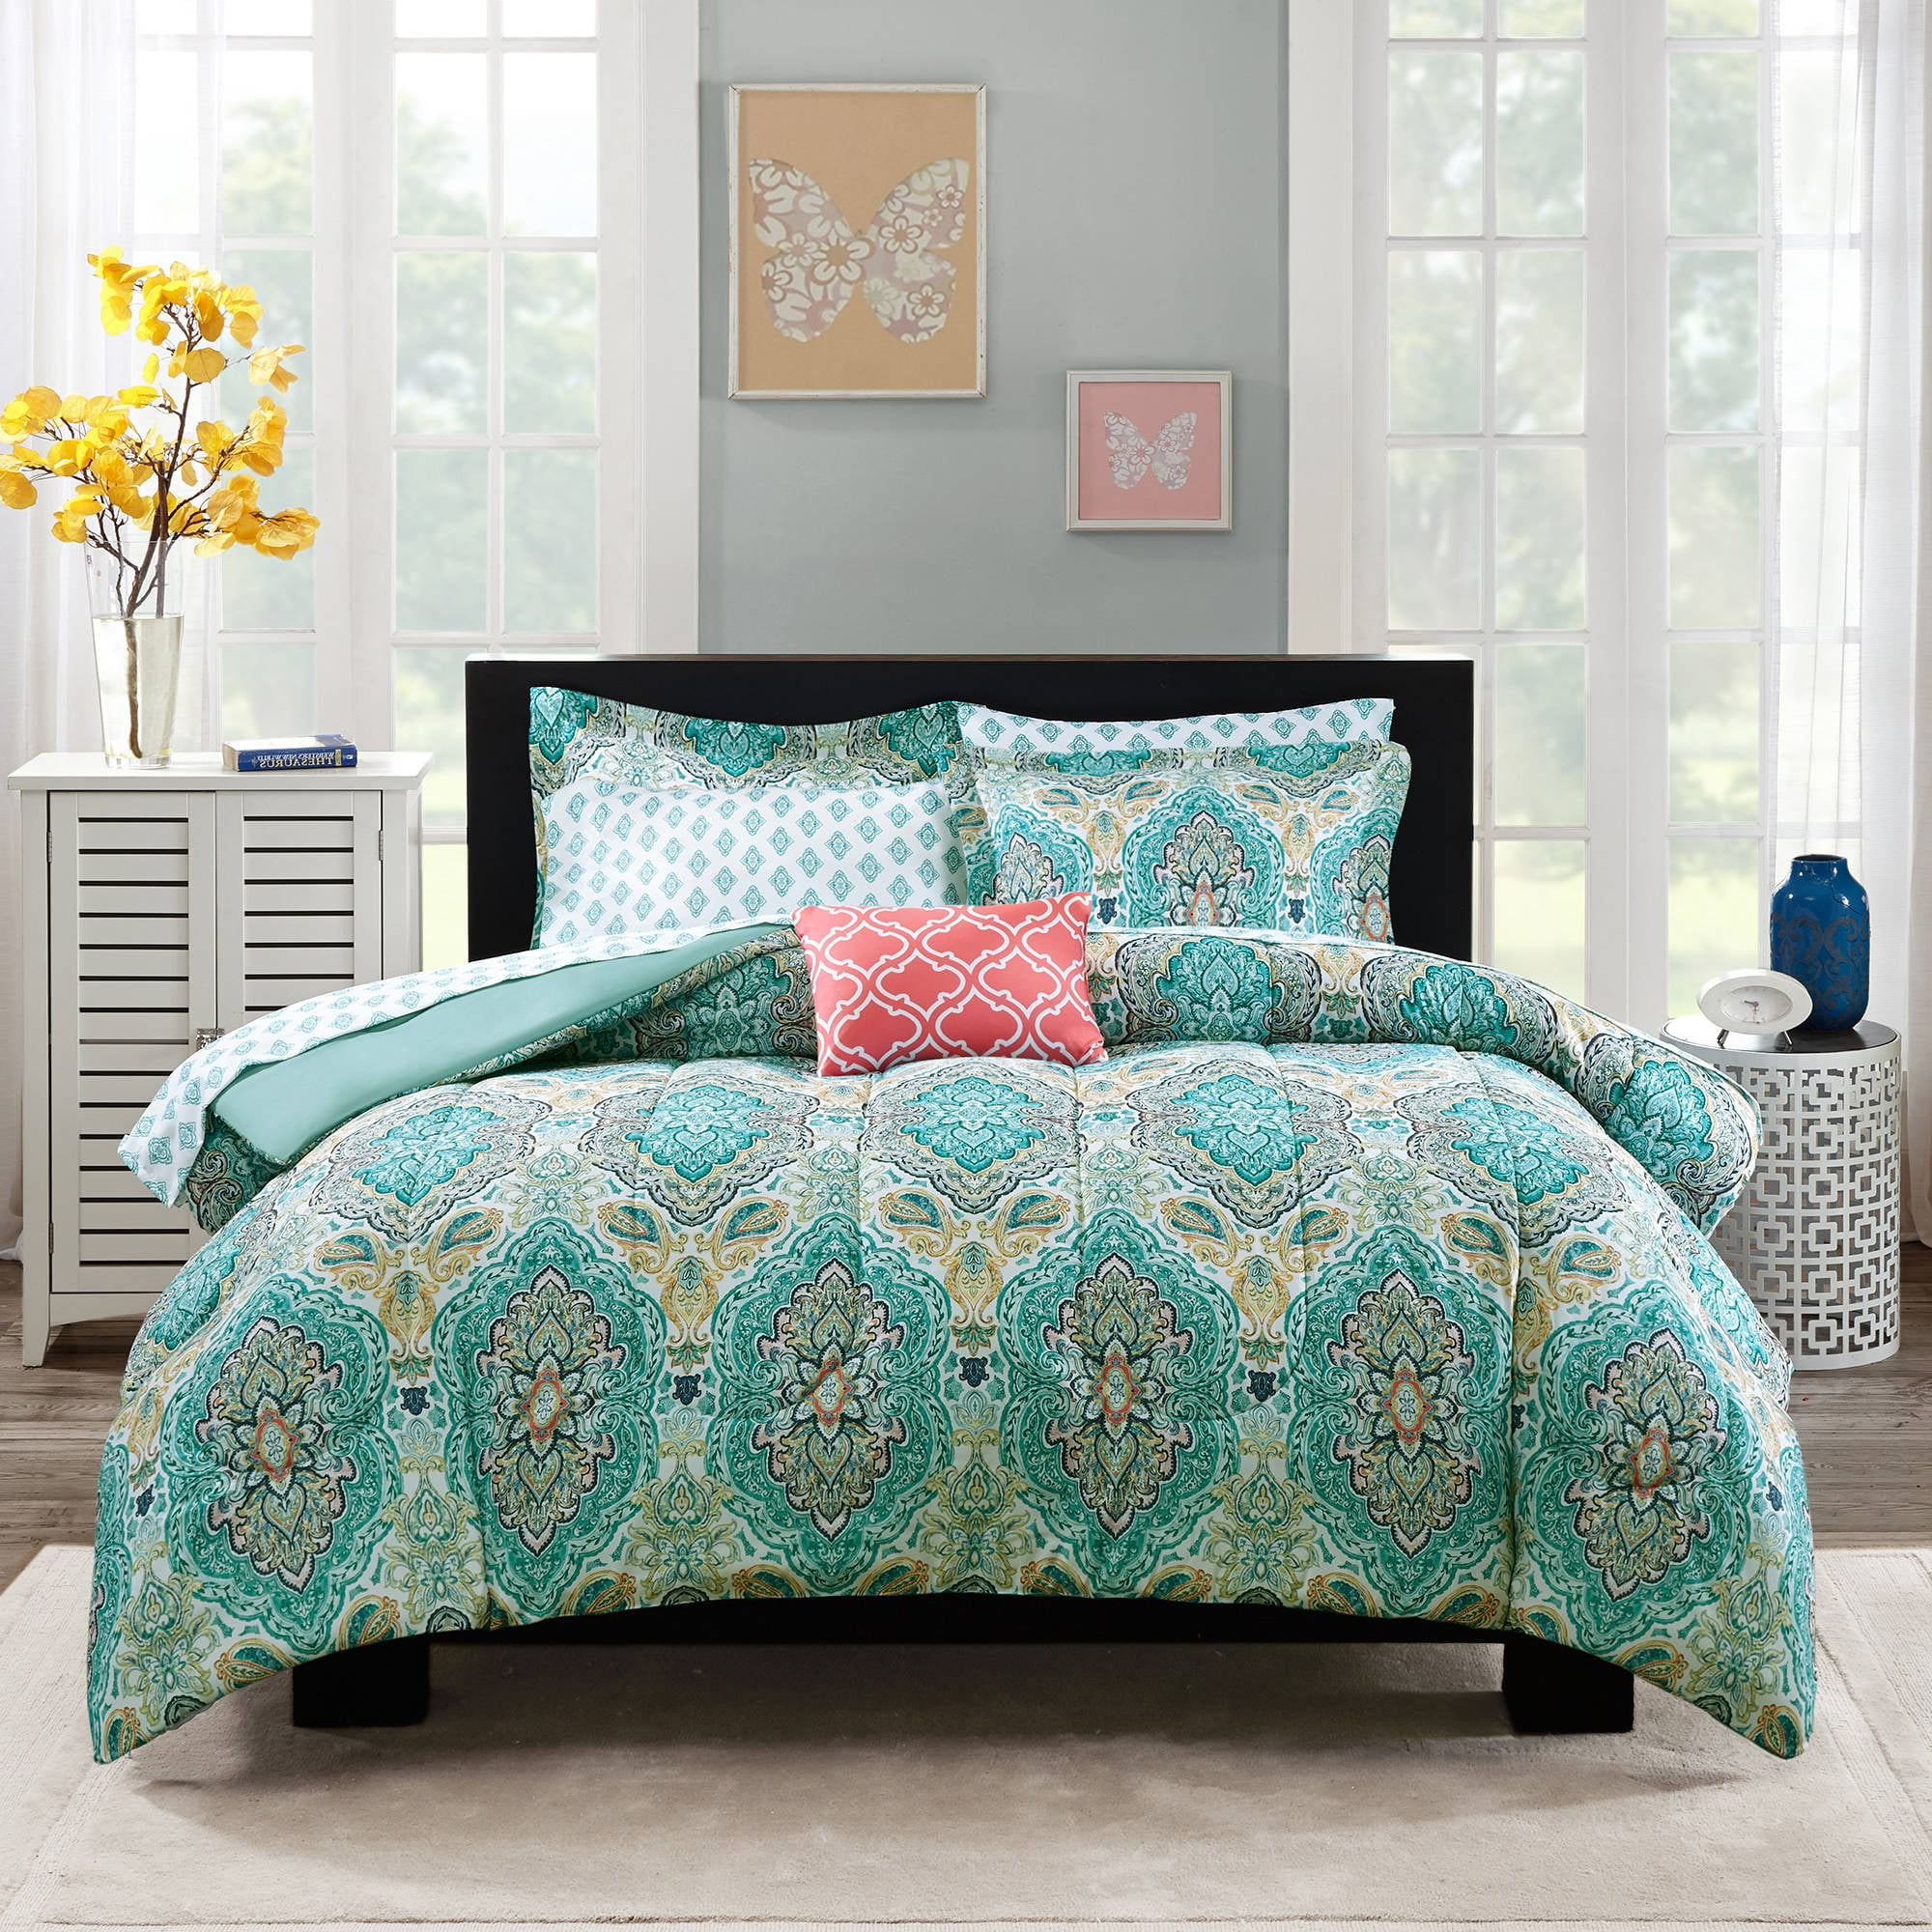 bedinabag sets  walmartcom - mainstays monique paisley coordinated bedding set